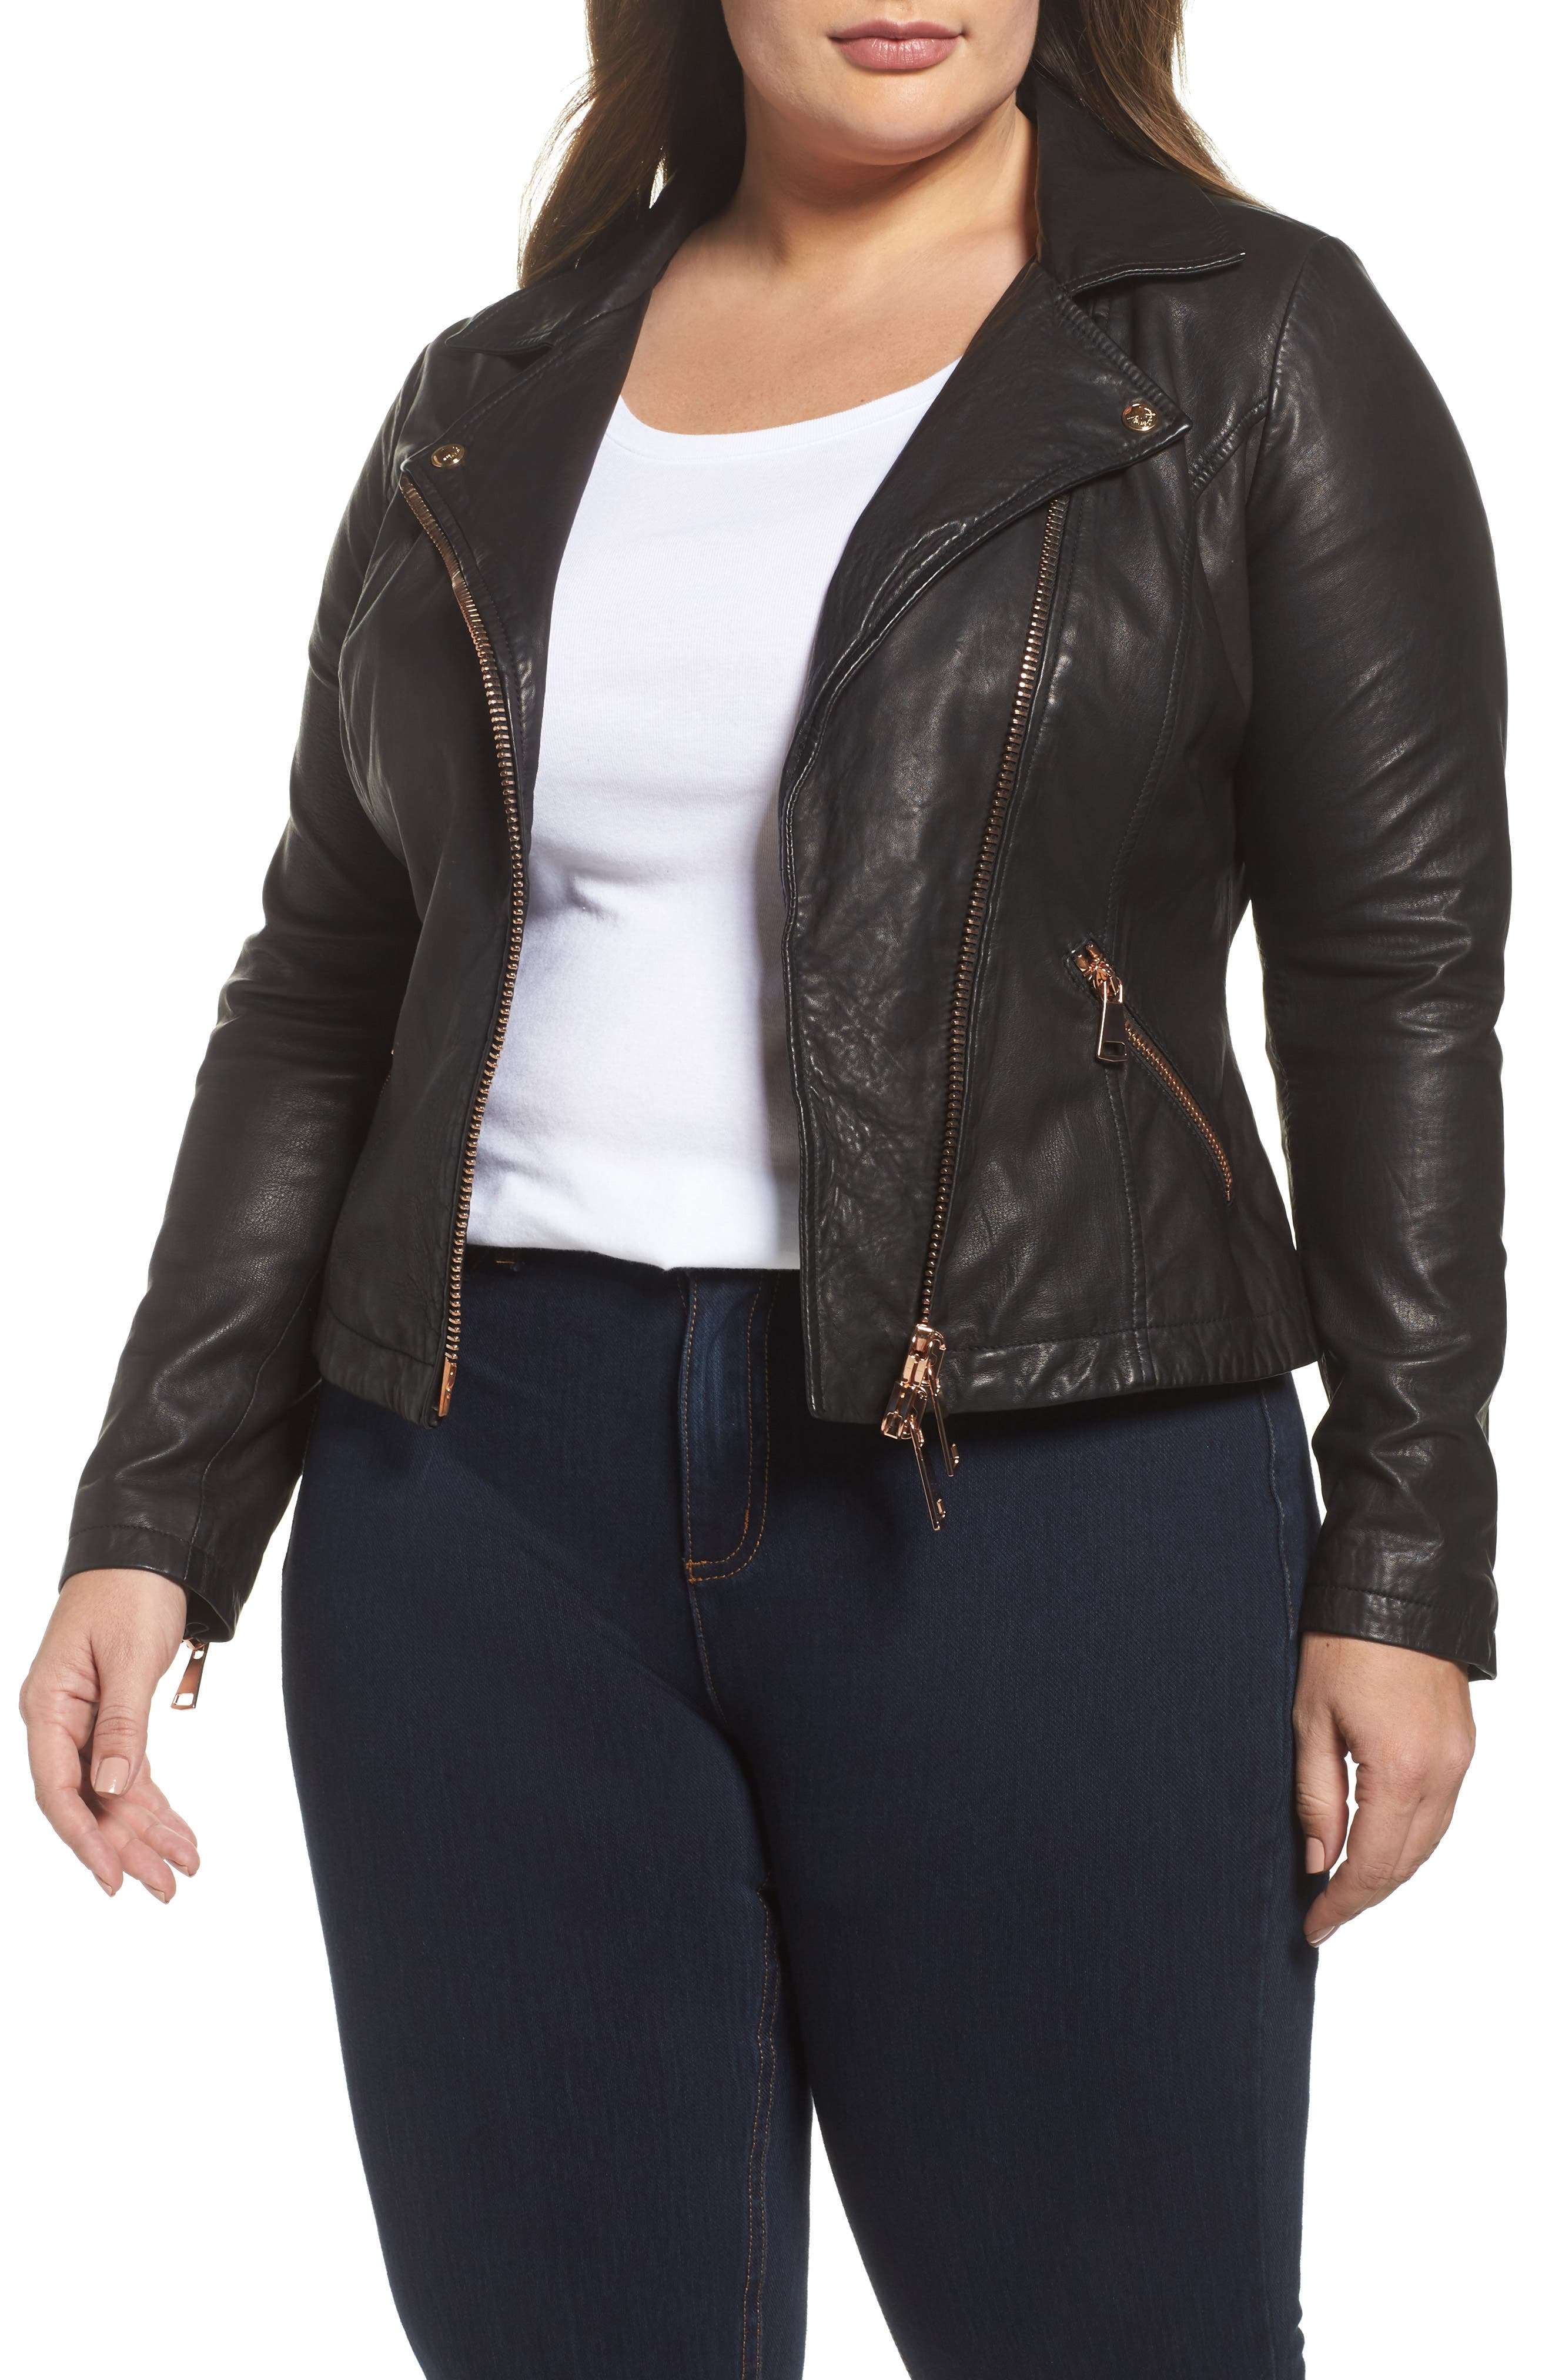 Ashley Graham x Marina Rinaldi Ebanista Leather Biker Jacket (Regular & Plus Size)